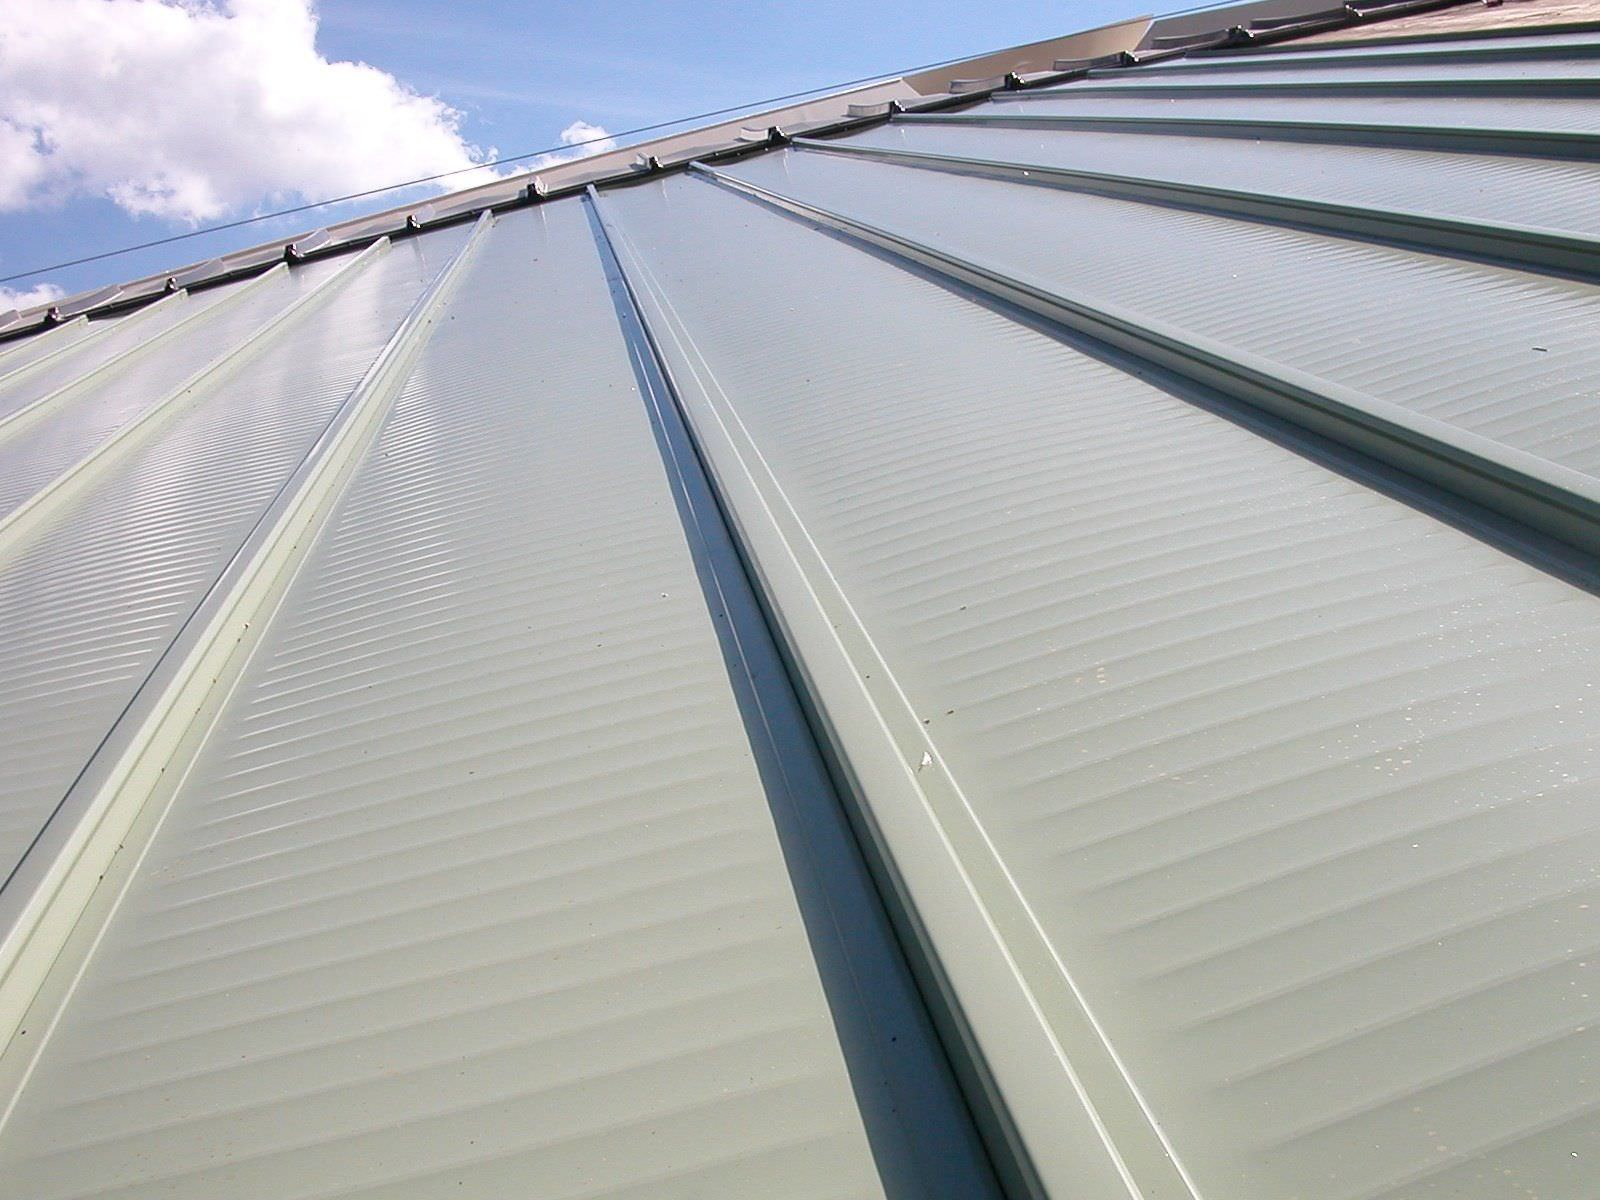 Aluminum Roofs-Boca Raton Pool Screen Enclosure Installation and Patio Screen Repairs Services-We do screen enclosures, patios, pool screens, fences, aluminum roofs, professional screen building, Pool Screen Enclosures, Patio Screen Enclosures, Fences & Gates, Storm Shutters, Decks, Balconies & Railings, Installation, Repairs, and more